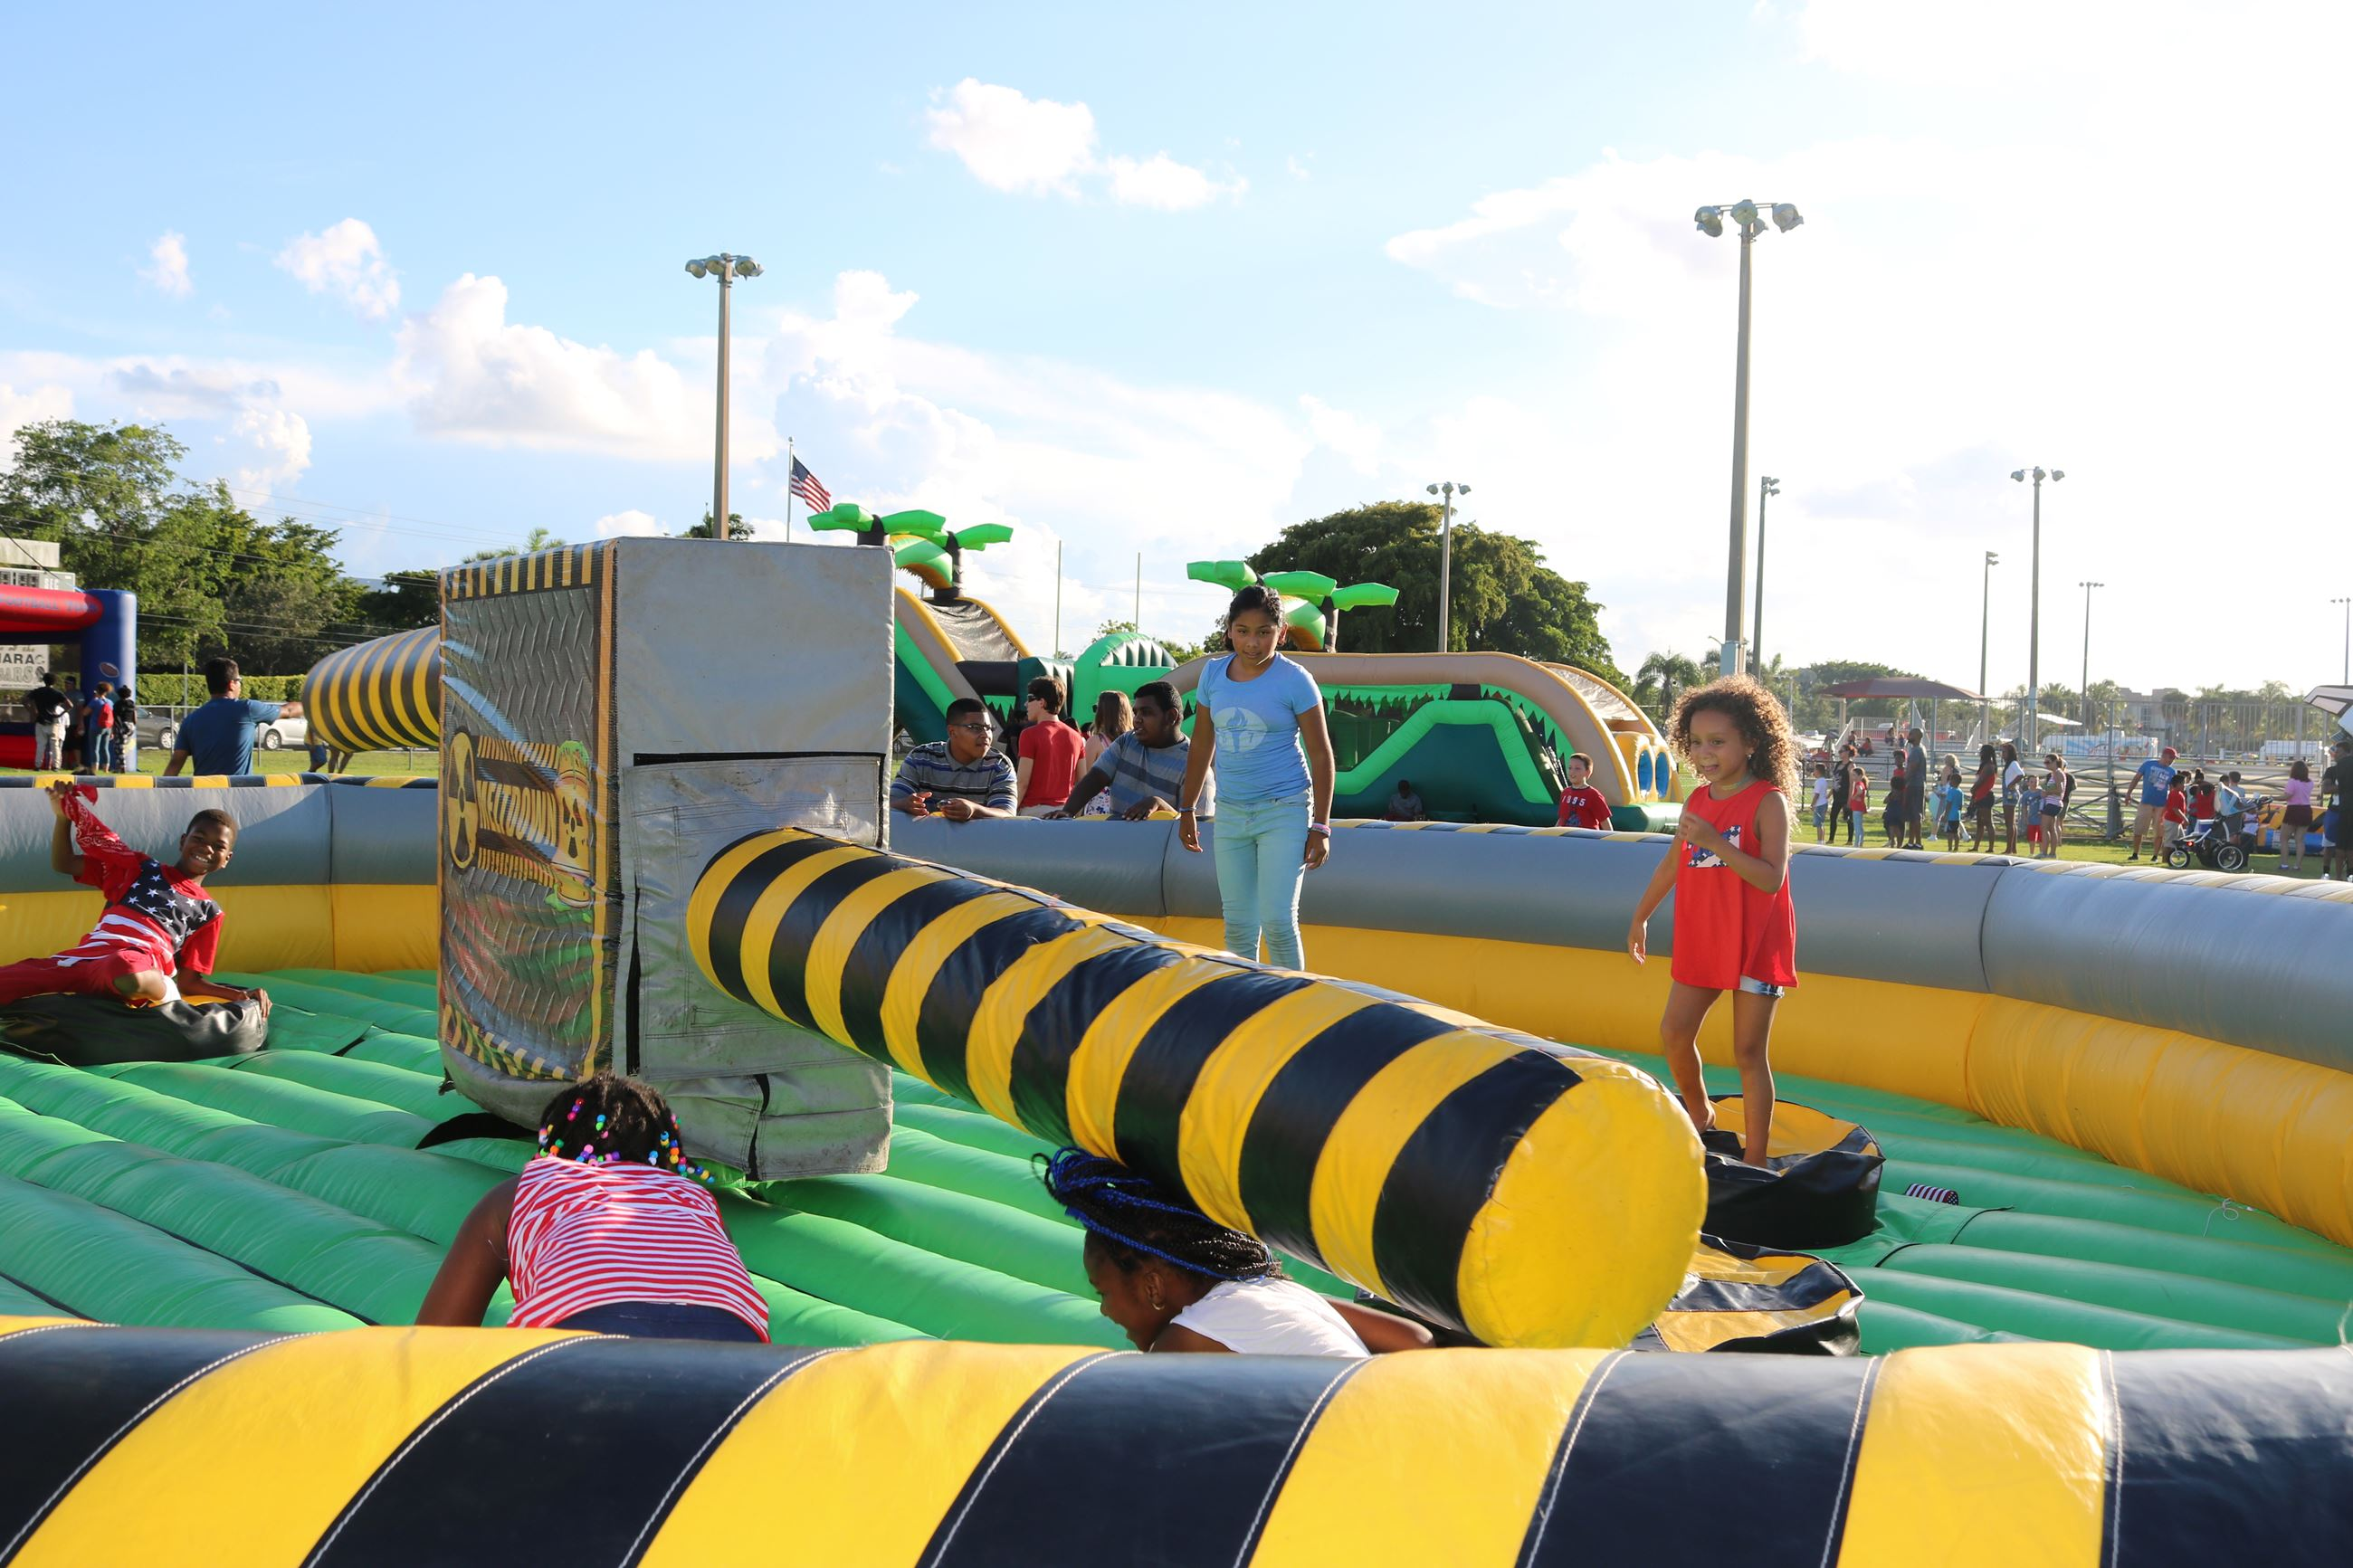 Children play on an inflatable ride at July 4th event.